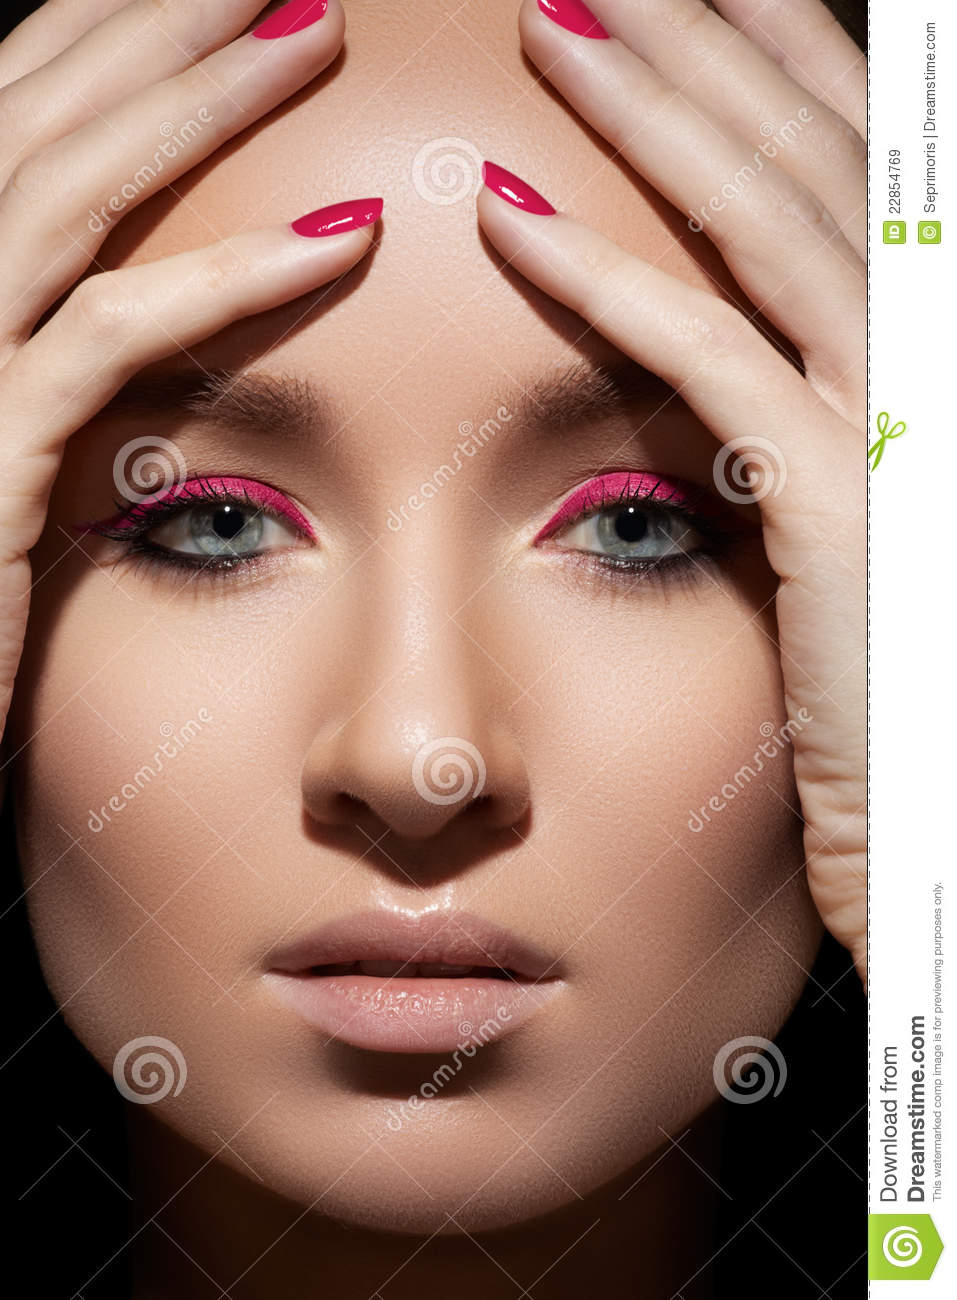 Beautiful Model Face With Fashion Make-up & Nails Stock ...